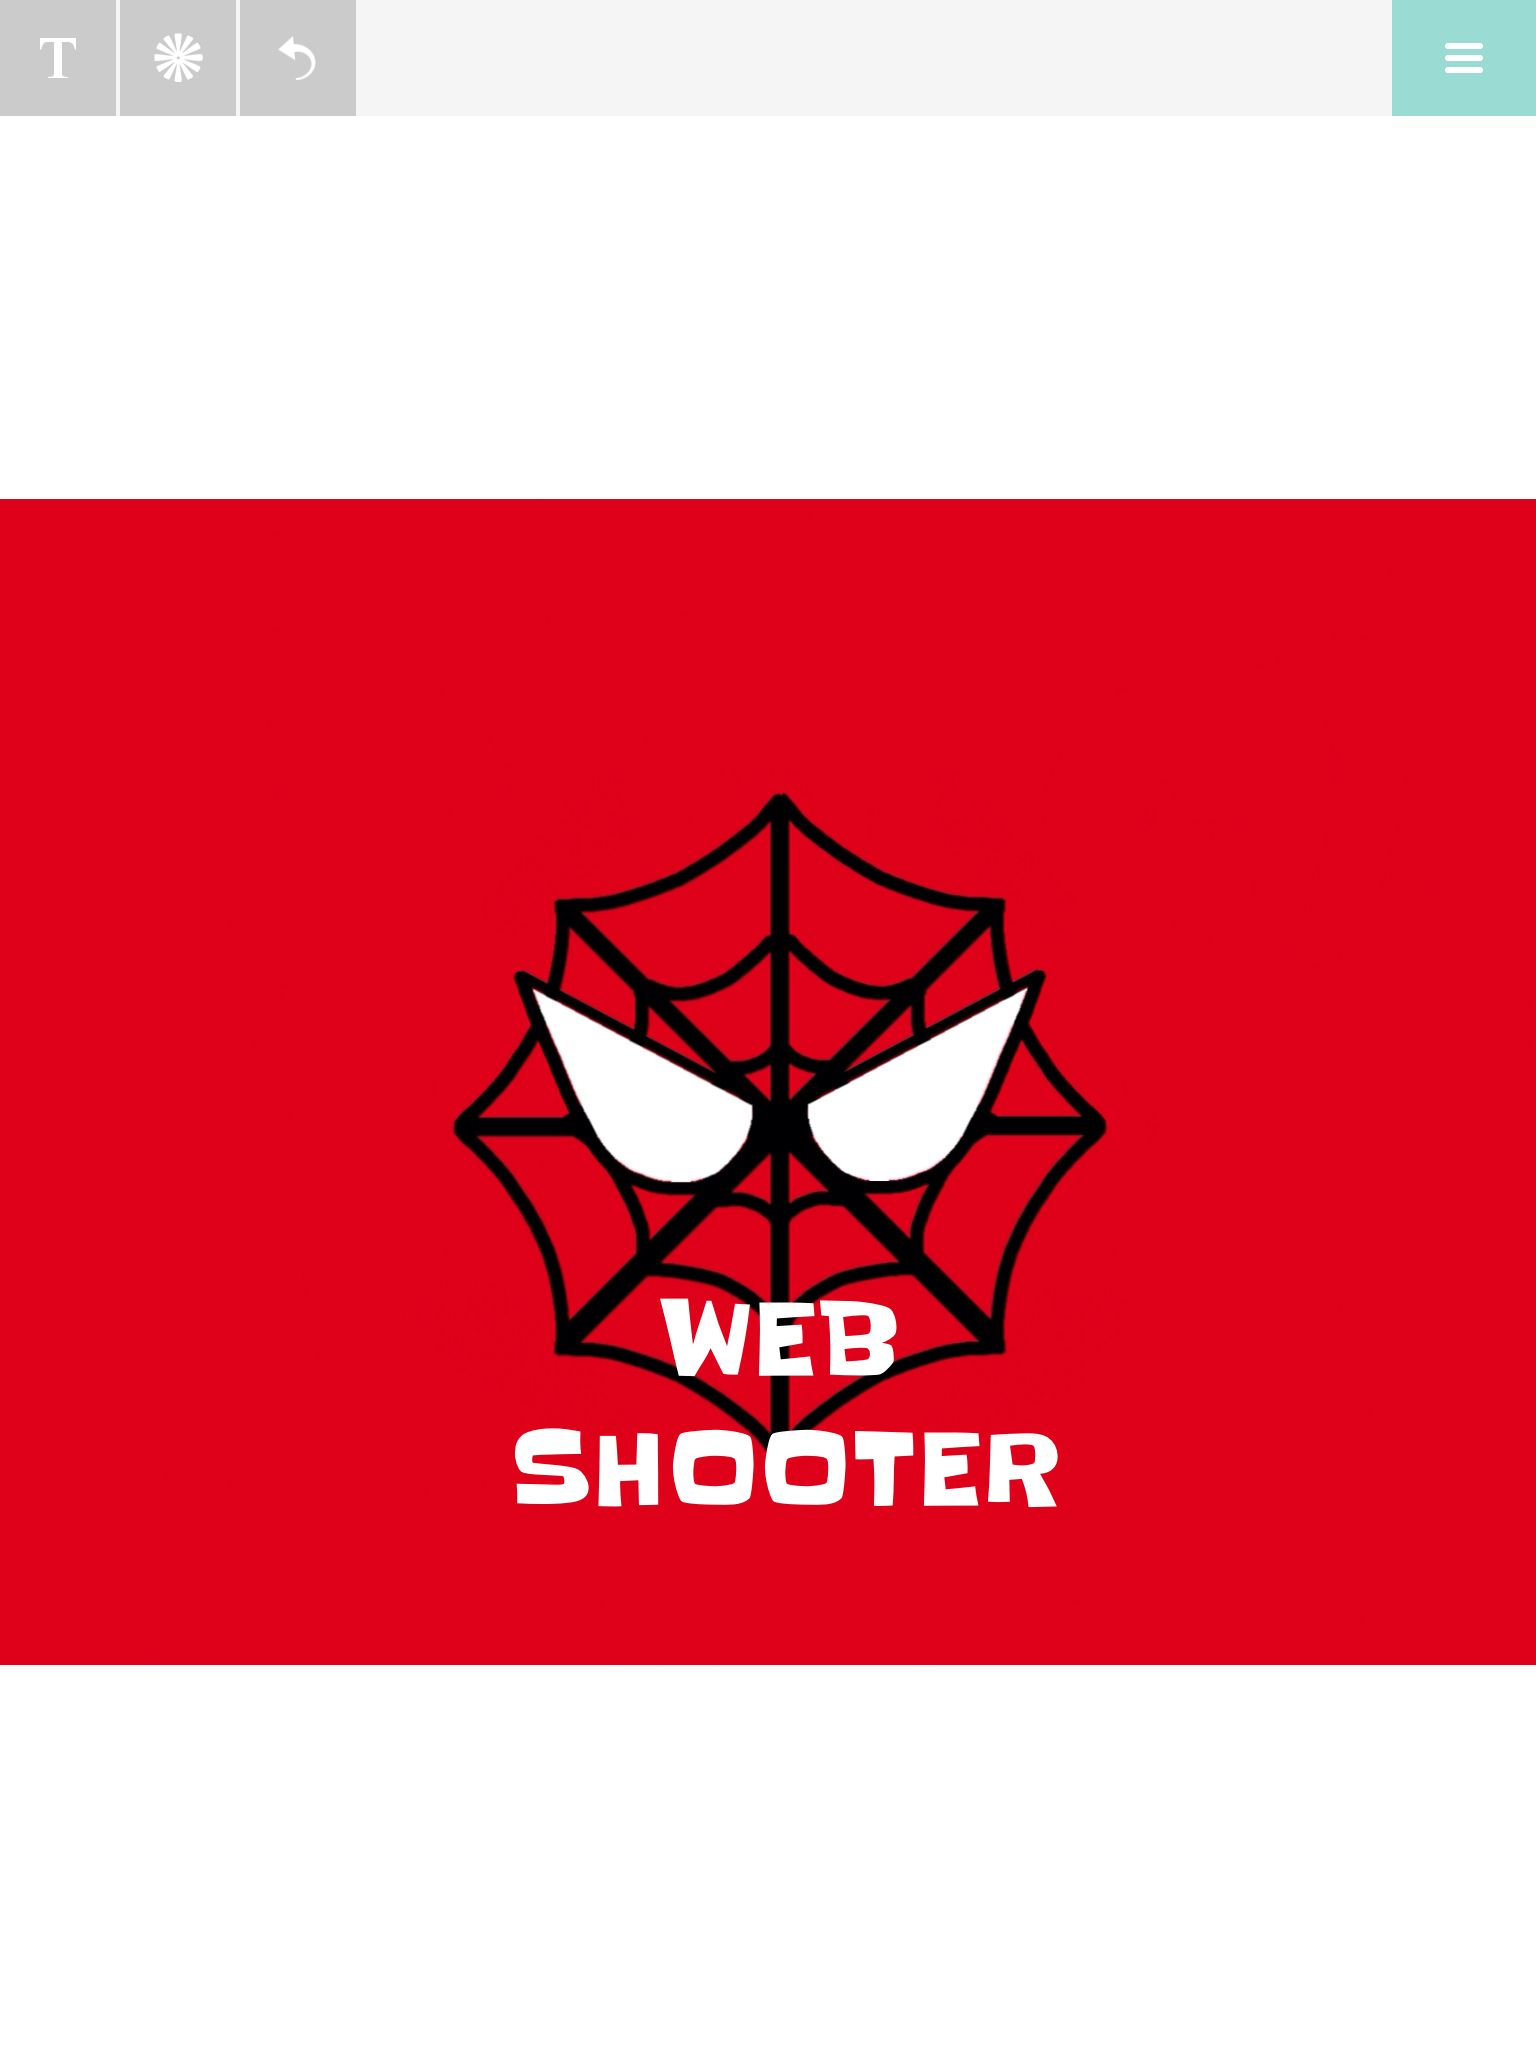 Web Shooter Superhero Silly String Label